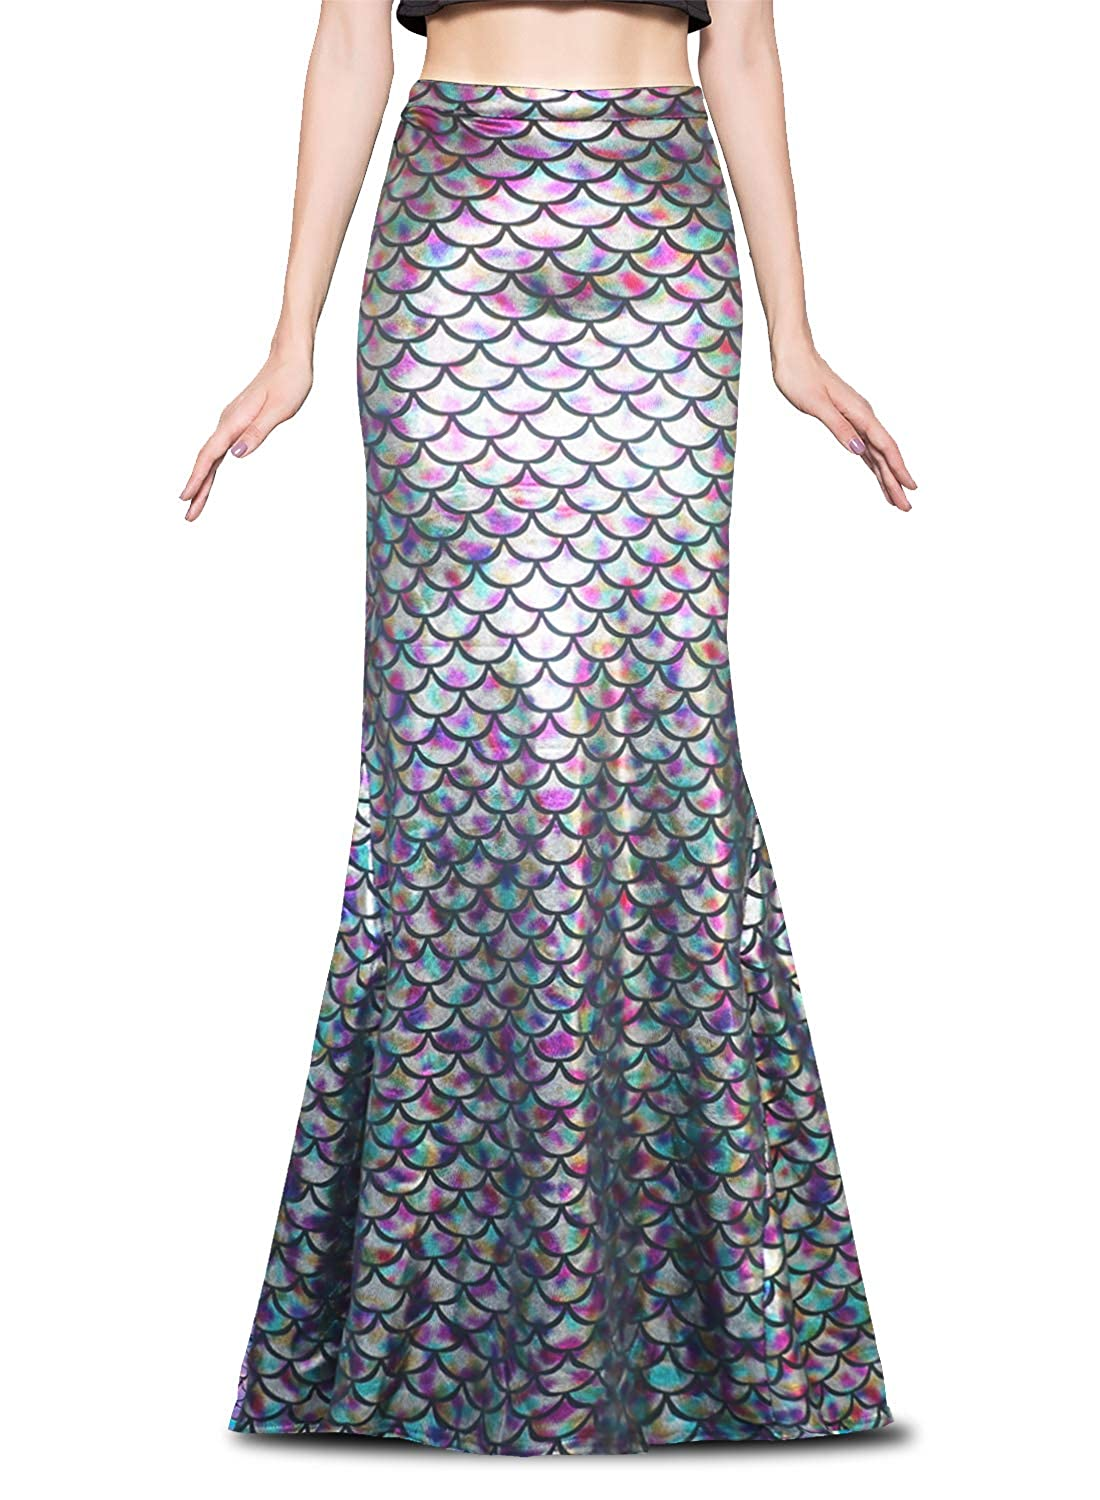 Ladies Long Iridescent Rainbow Fish Scale Print Stretchy Flared Mermaid Skirt - DeluxeAdultCostumes.com